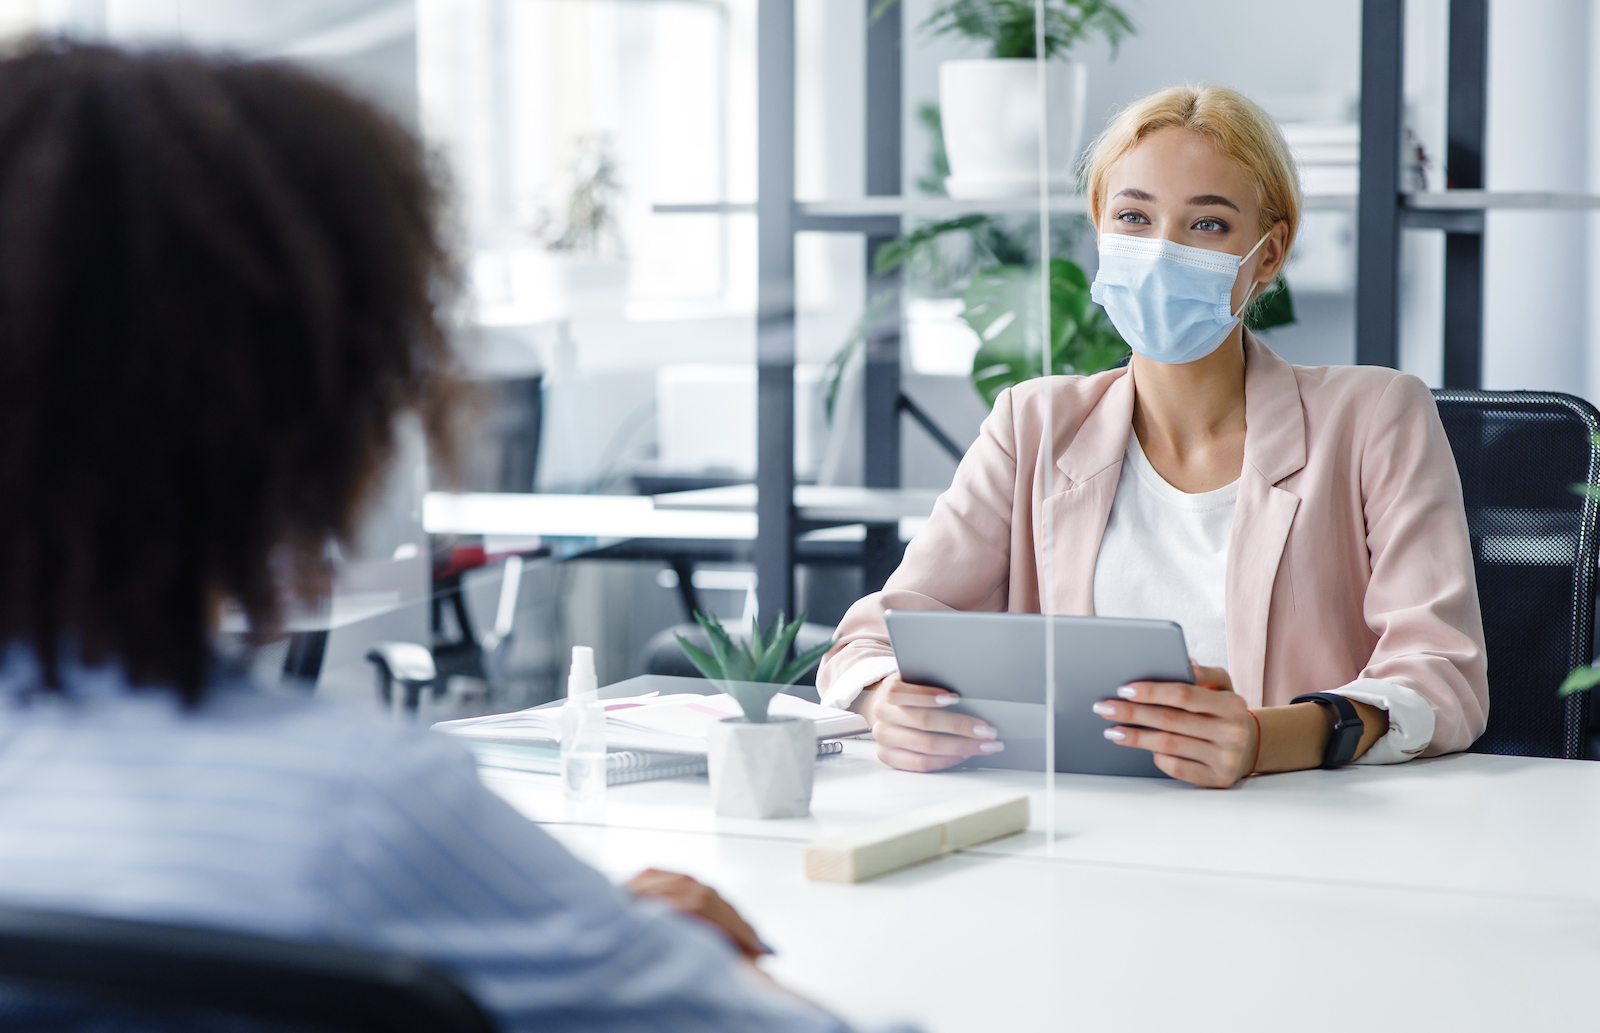 Face-to-Face In-Person Interview Etiquette During COVID-19